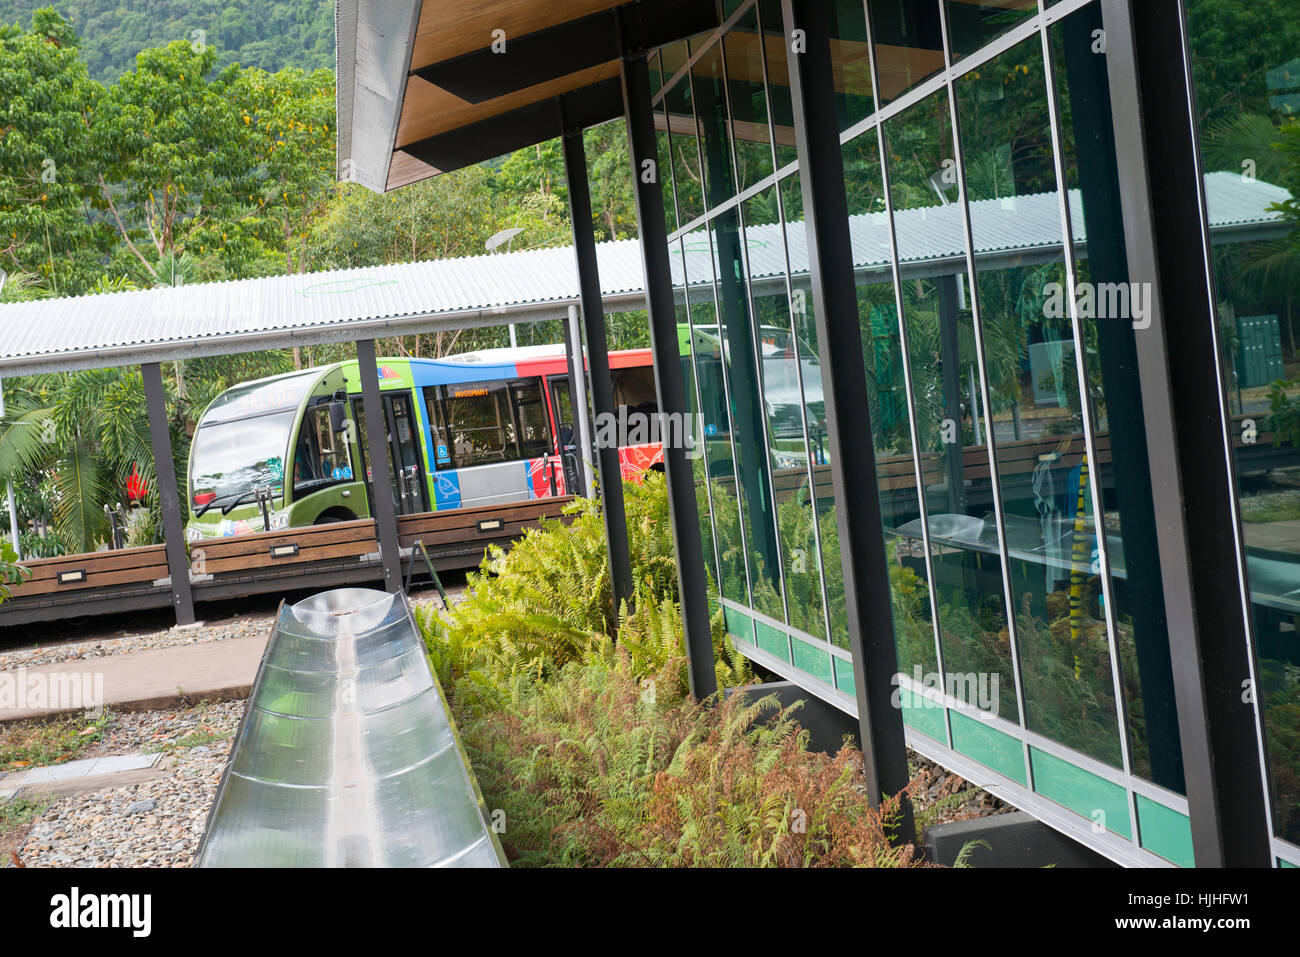 Courtesy Shuttle Bus at the Visitor Centre at Mossman Gorge, Queensland Australia - Stock Image